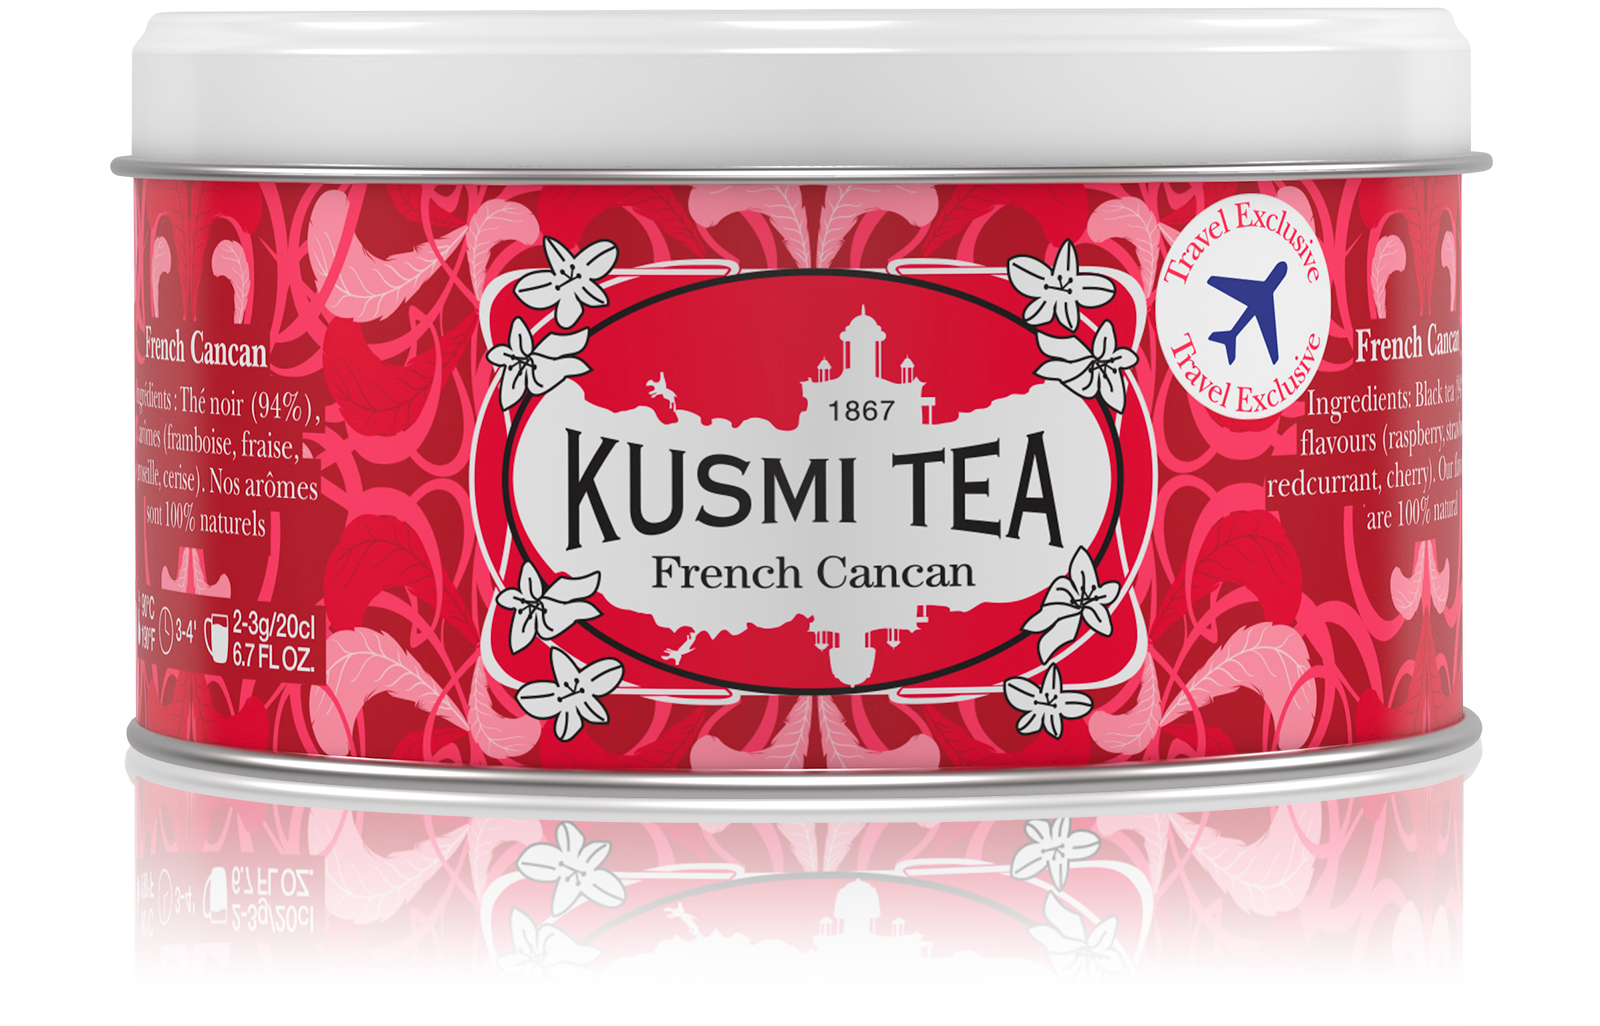 Thé noir - French Cancan - Vrac - Kusmi Tea